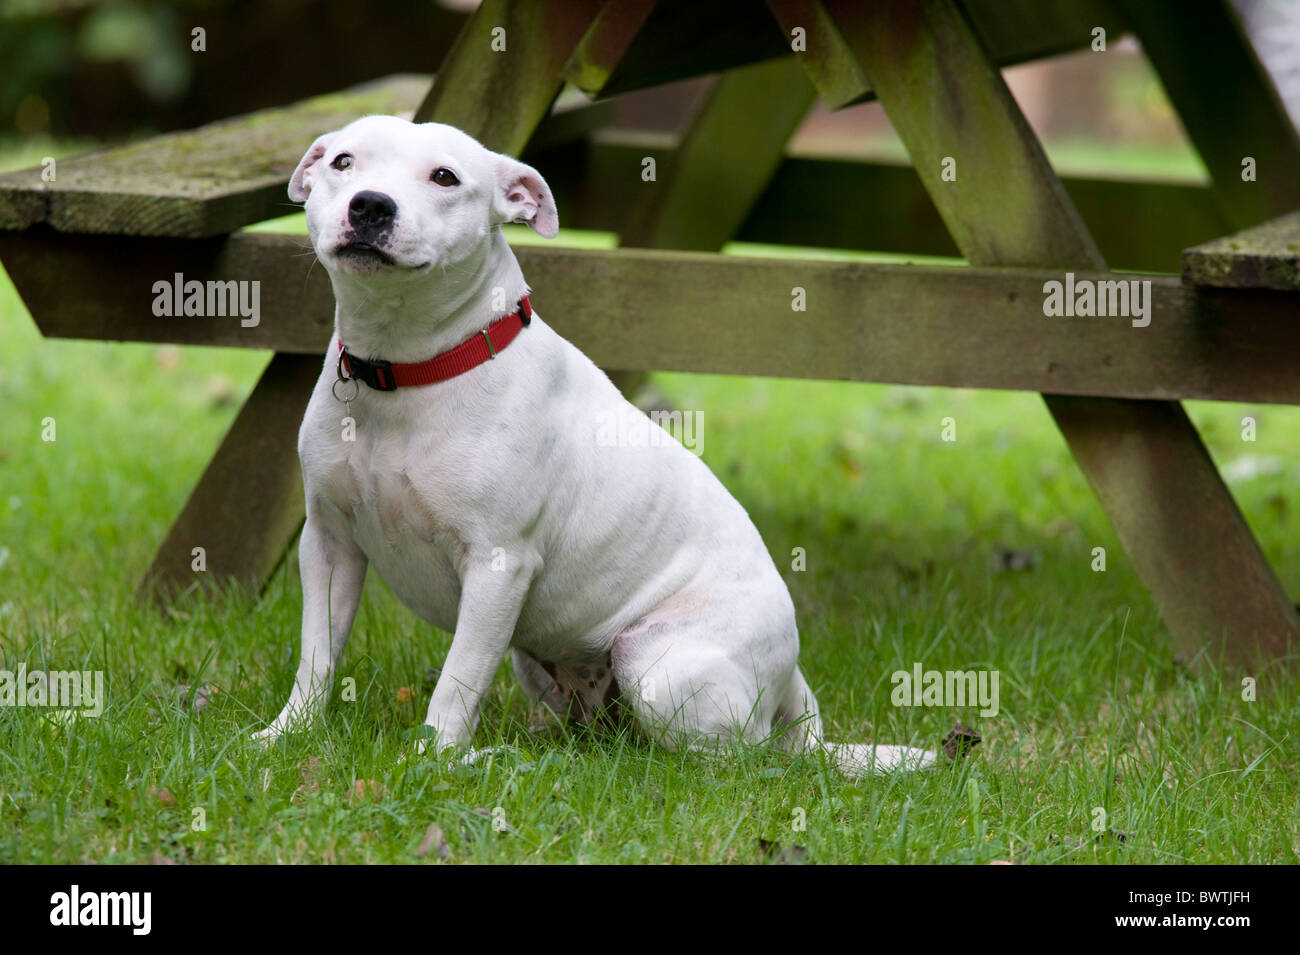 Staffordshire Bull Terrier Dog UK - Stock Image